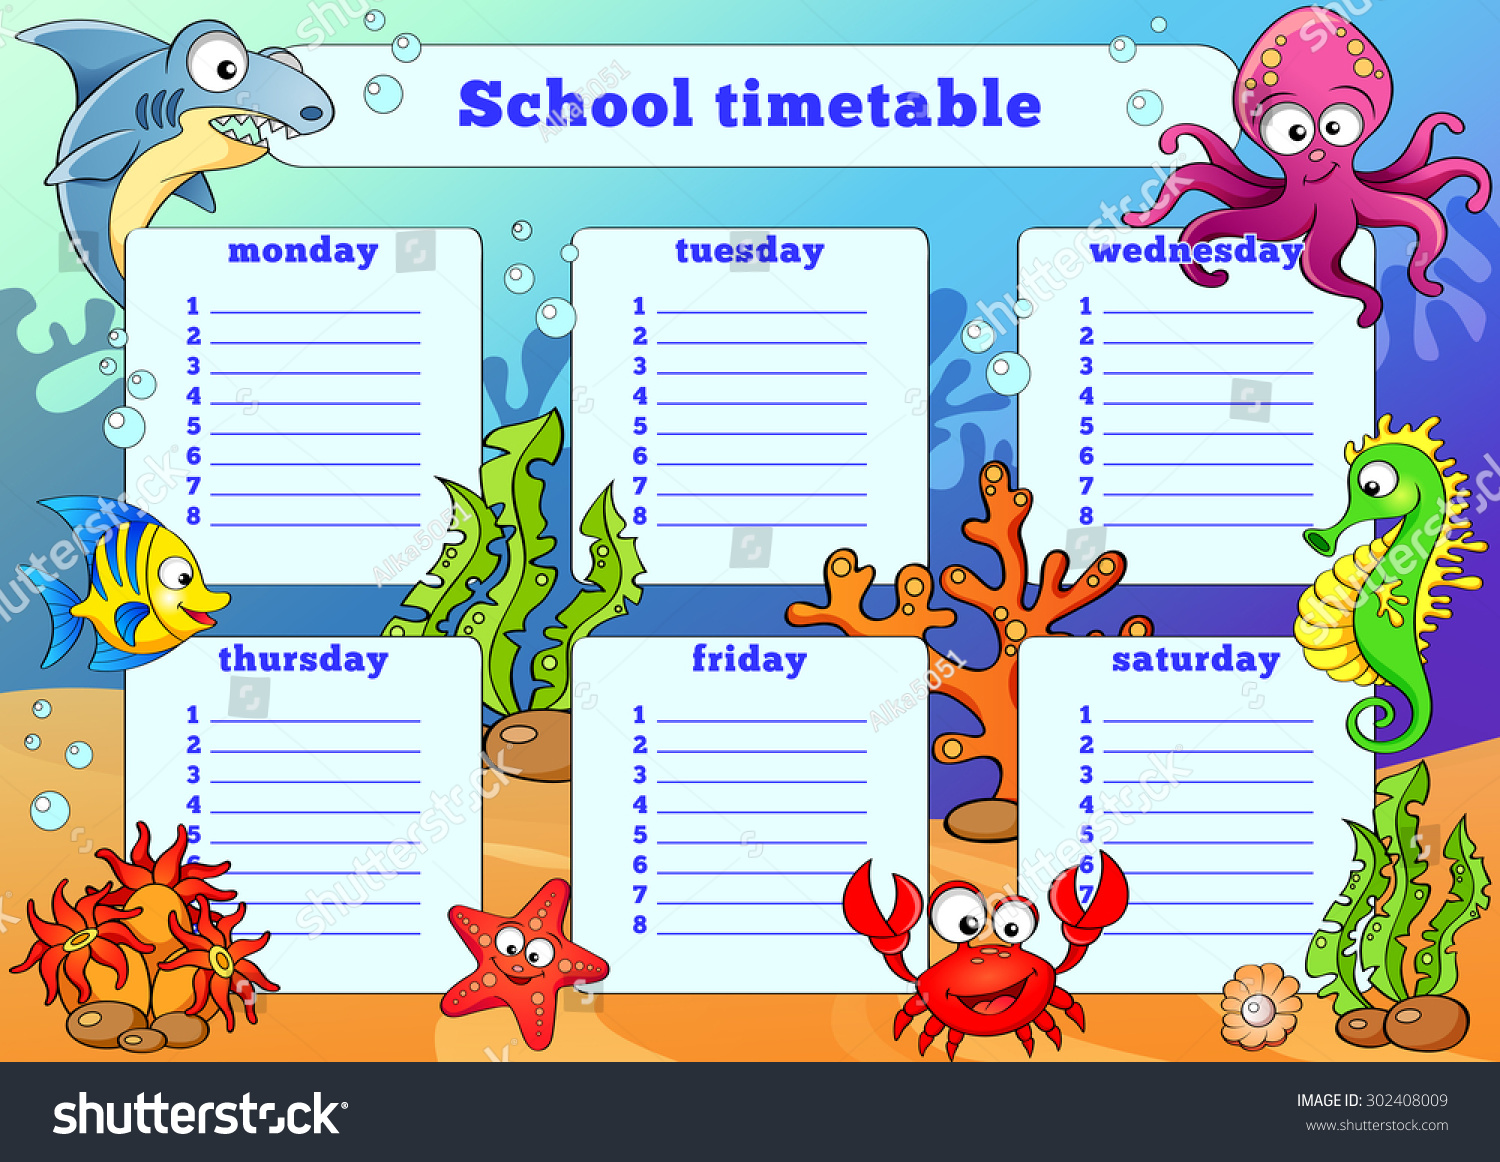 Minimalist Classroom Zelda ~ Time table designs for classroom times chart new